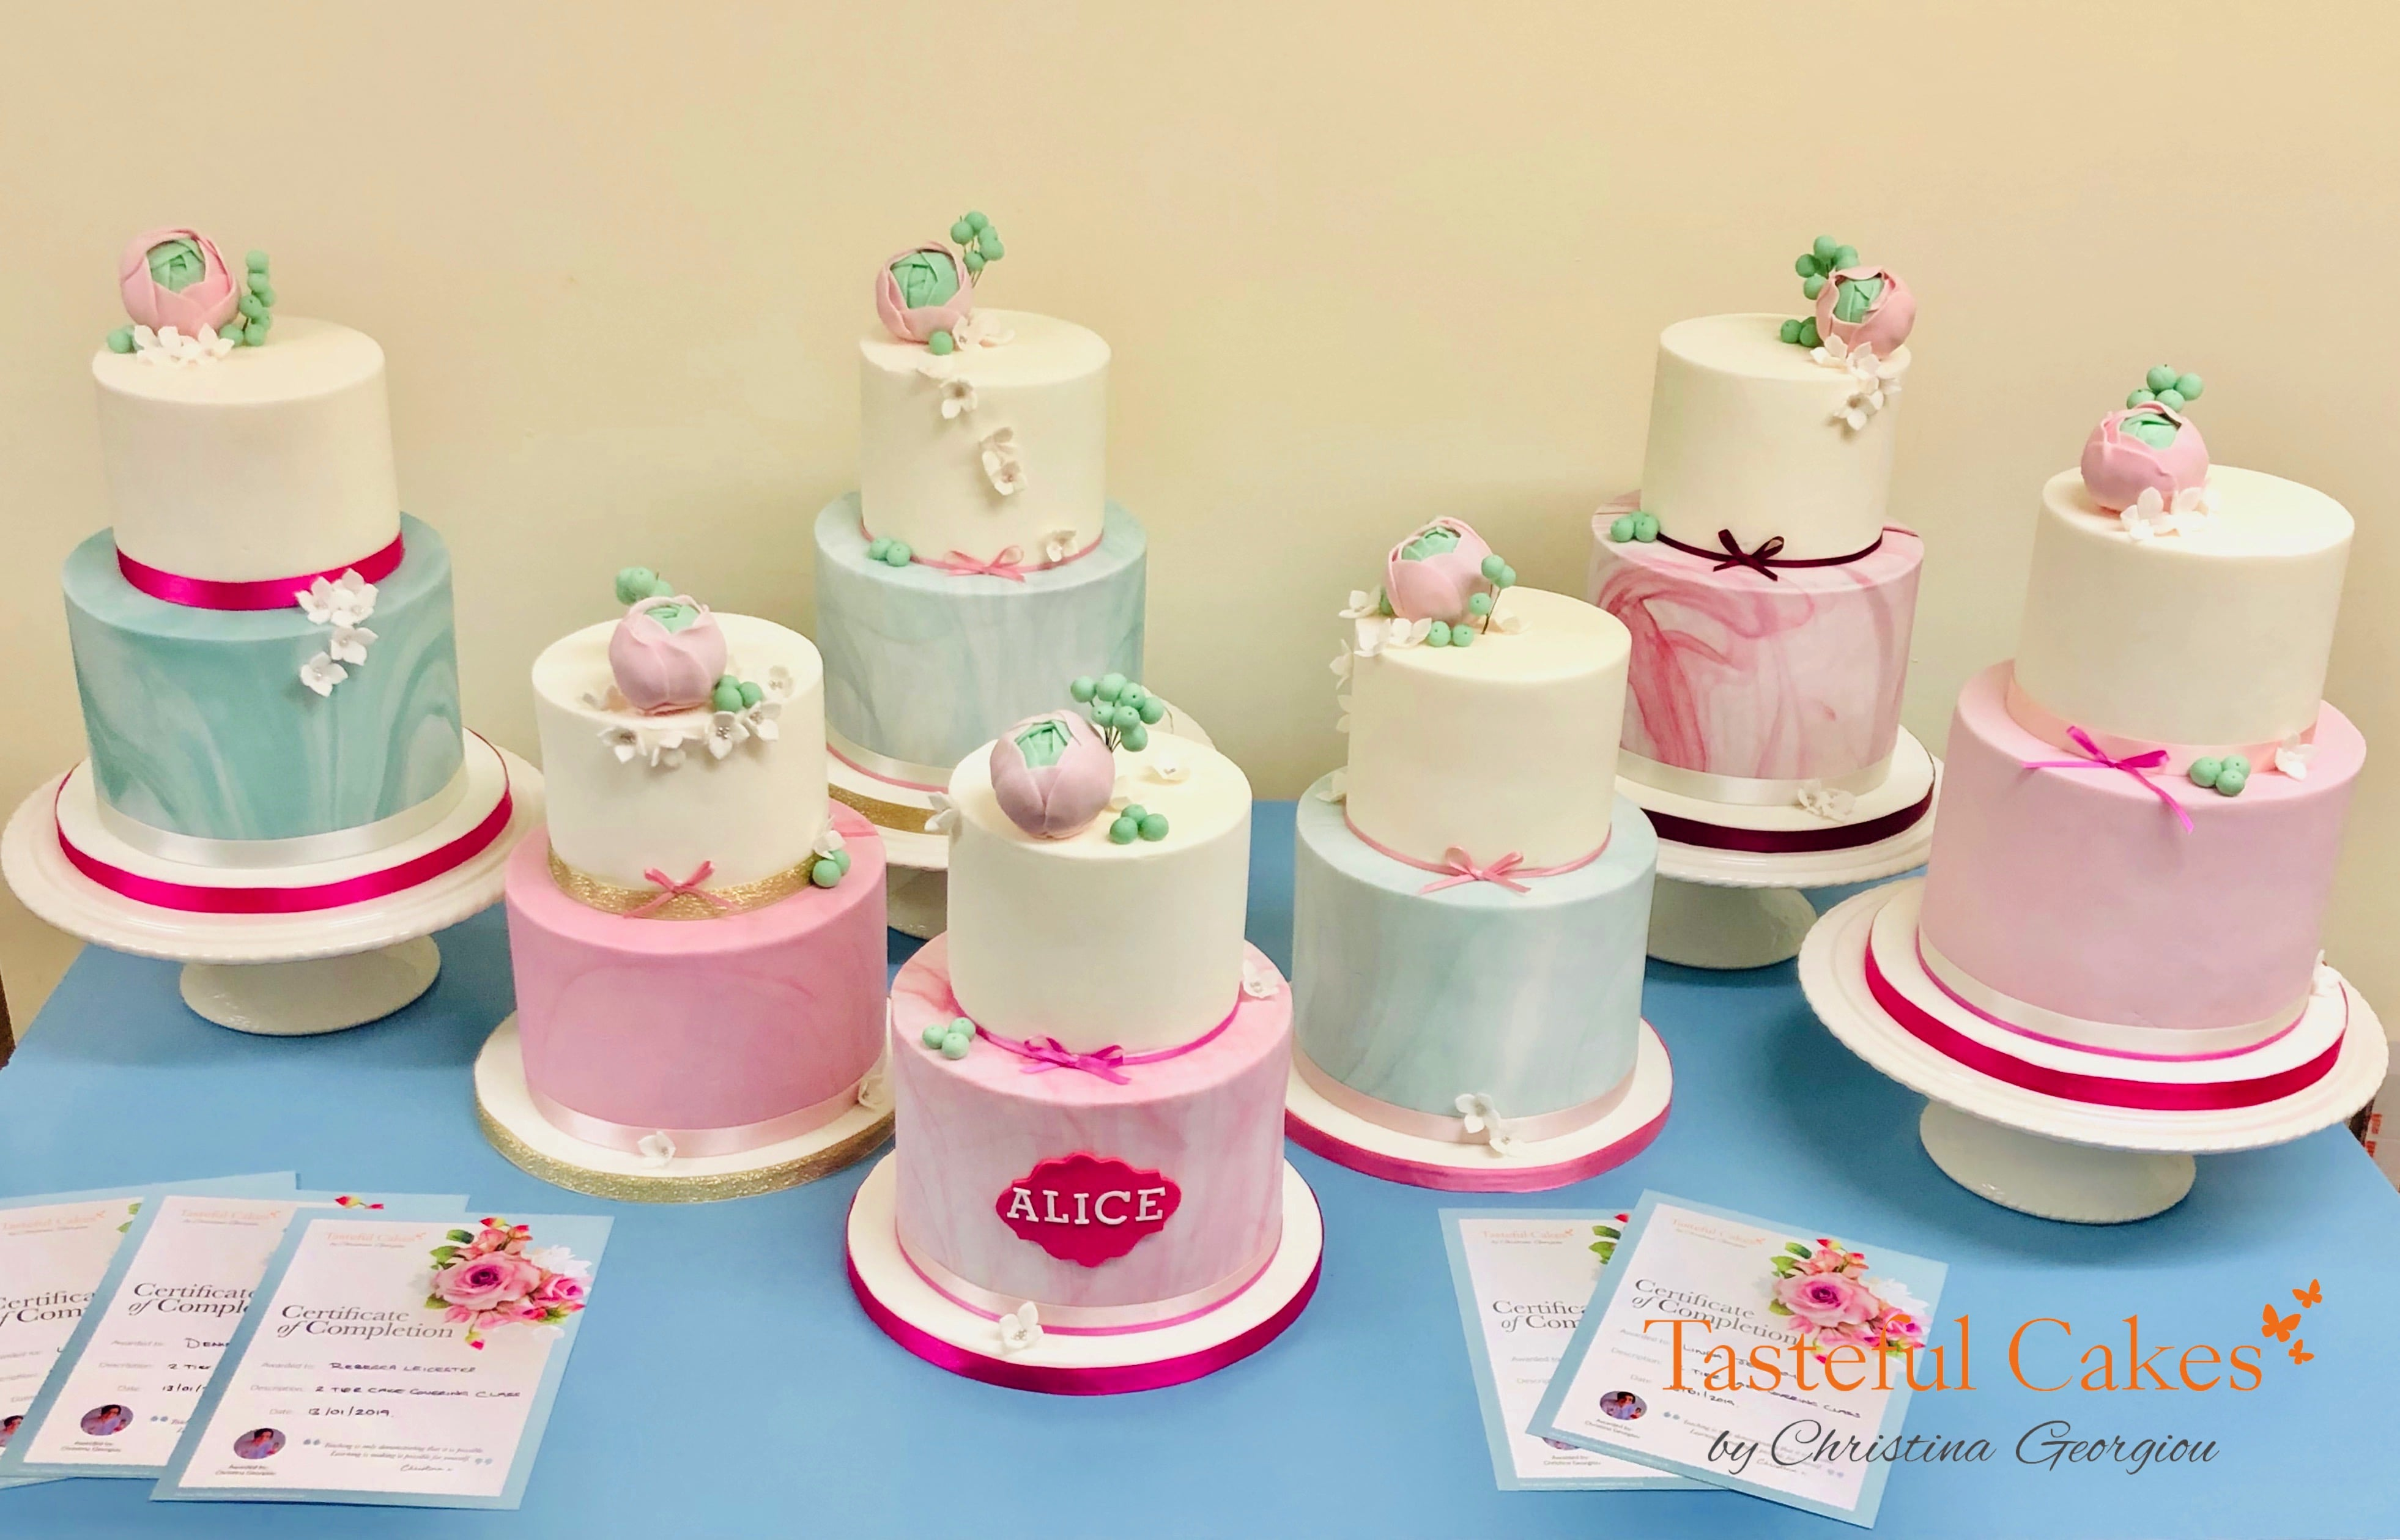 Tasteful Cakes By Christina Georgiou Cake Decorating Classes And